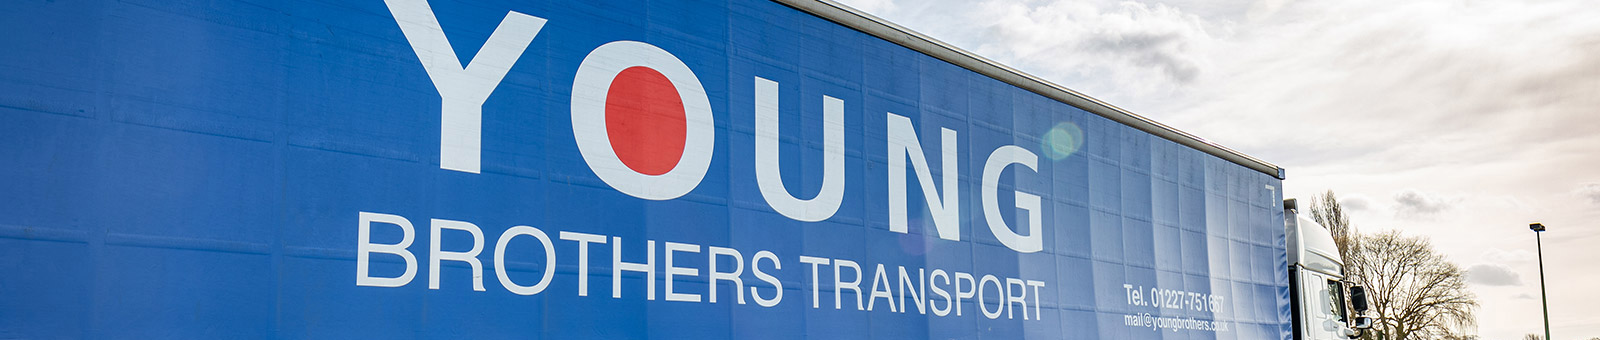 Young Brothers Transport Limited - UK Transport